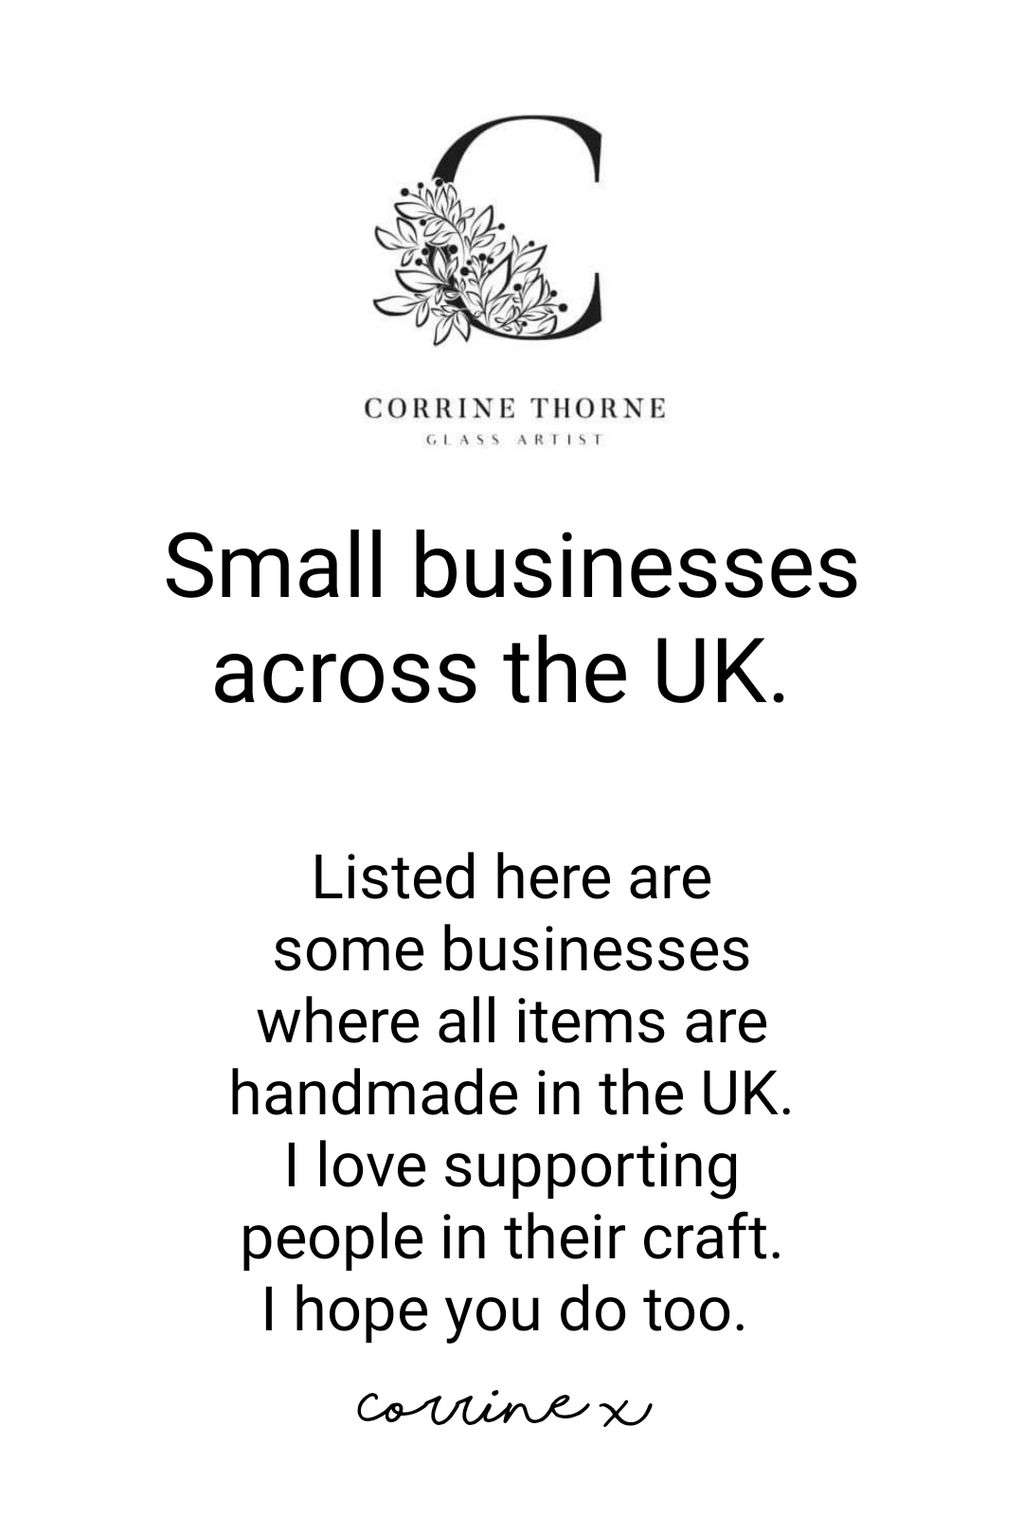 Small businesses in the uk handmade craft England Britain maker desinger